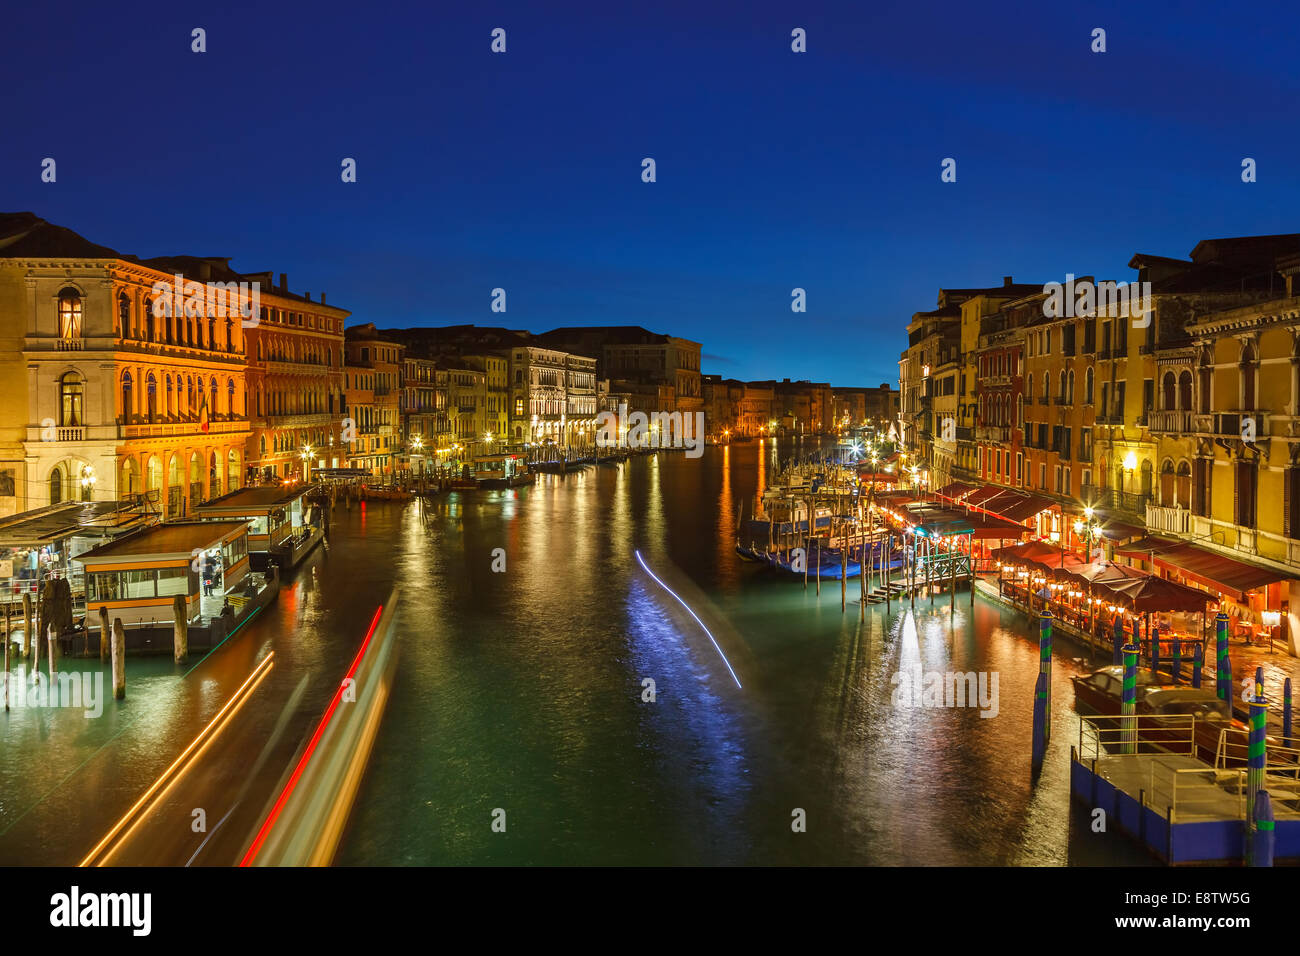 Grand Canal at night, Venice - Stock Image